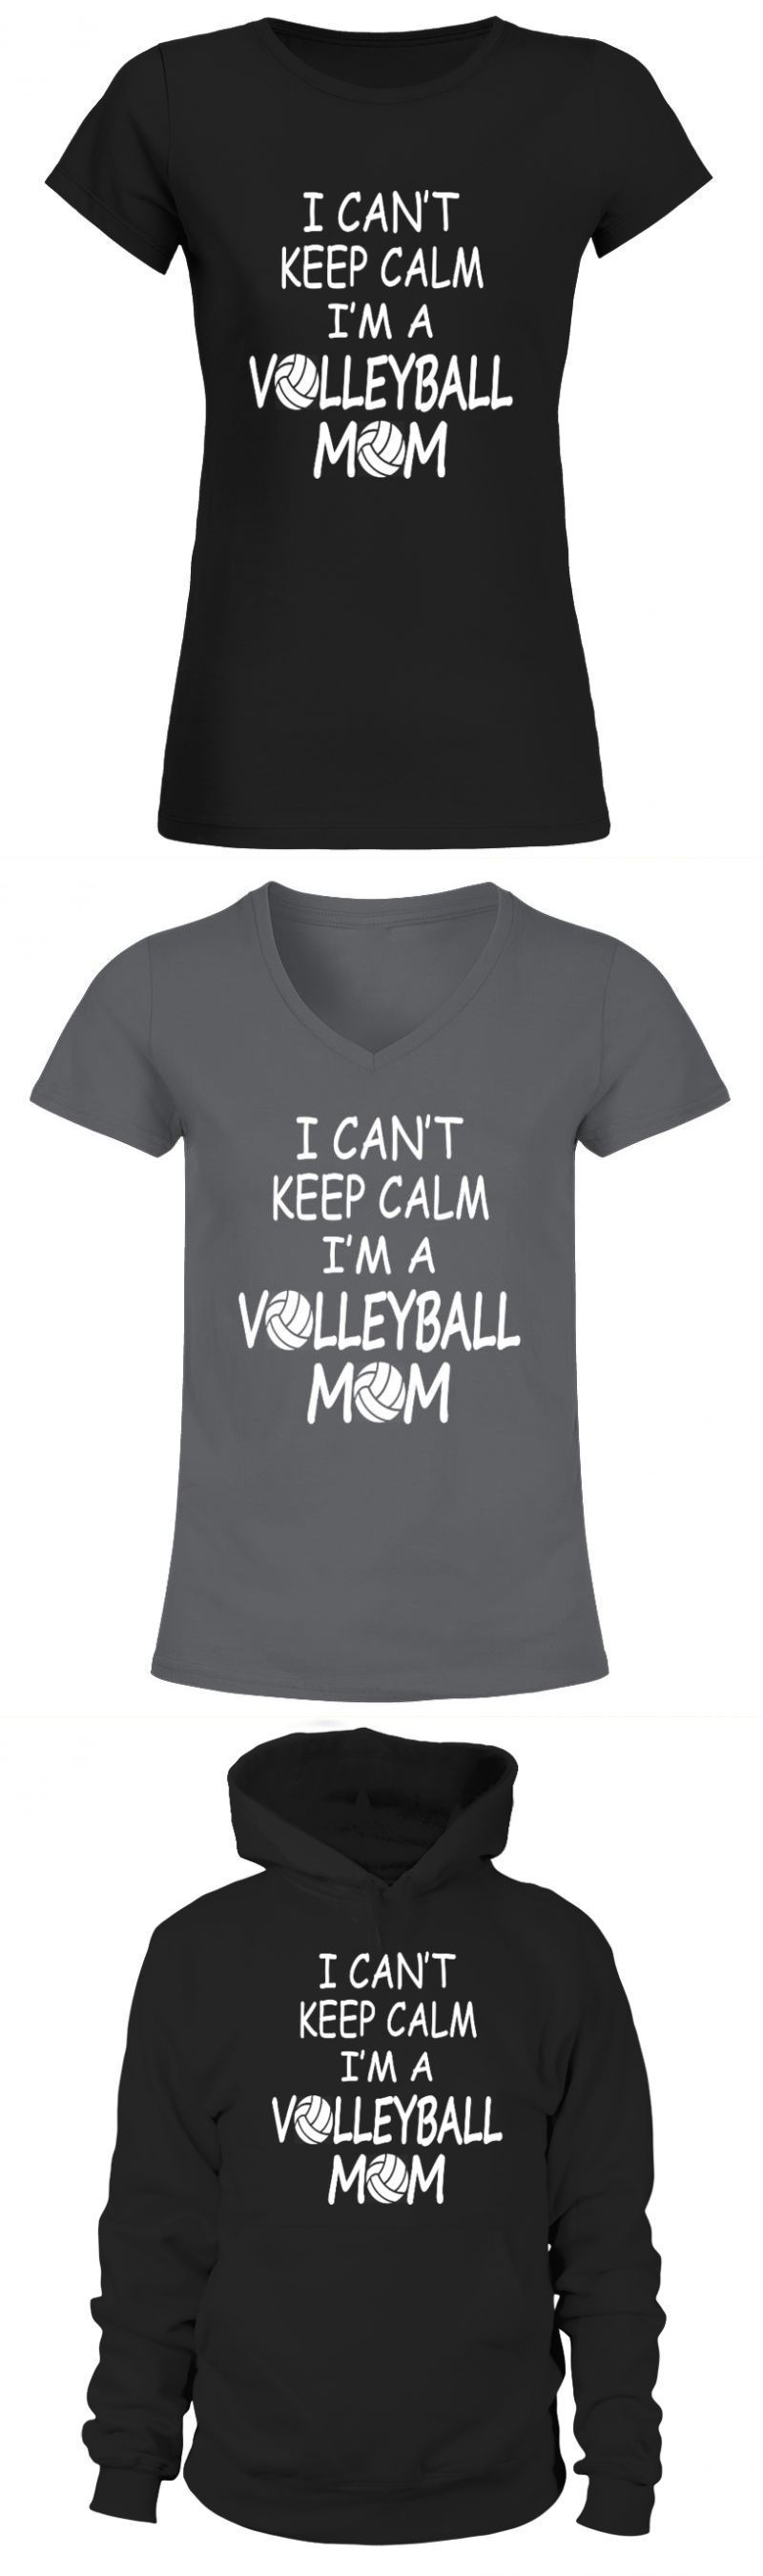 Volleyball Tshirt Designs And Sayings I M A Volleyball Mom T Shirts For Volleyball Team Volleyball Volleyball Tshirt Designs Volleyball Tshirts Volleyball Mom